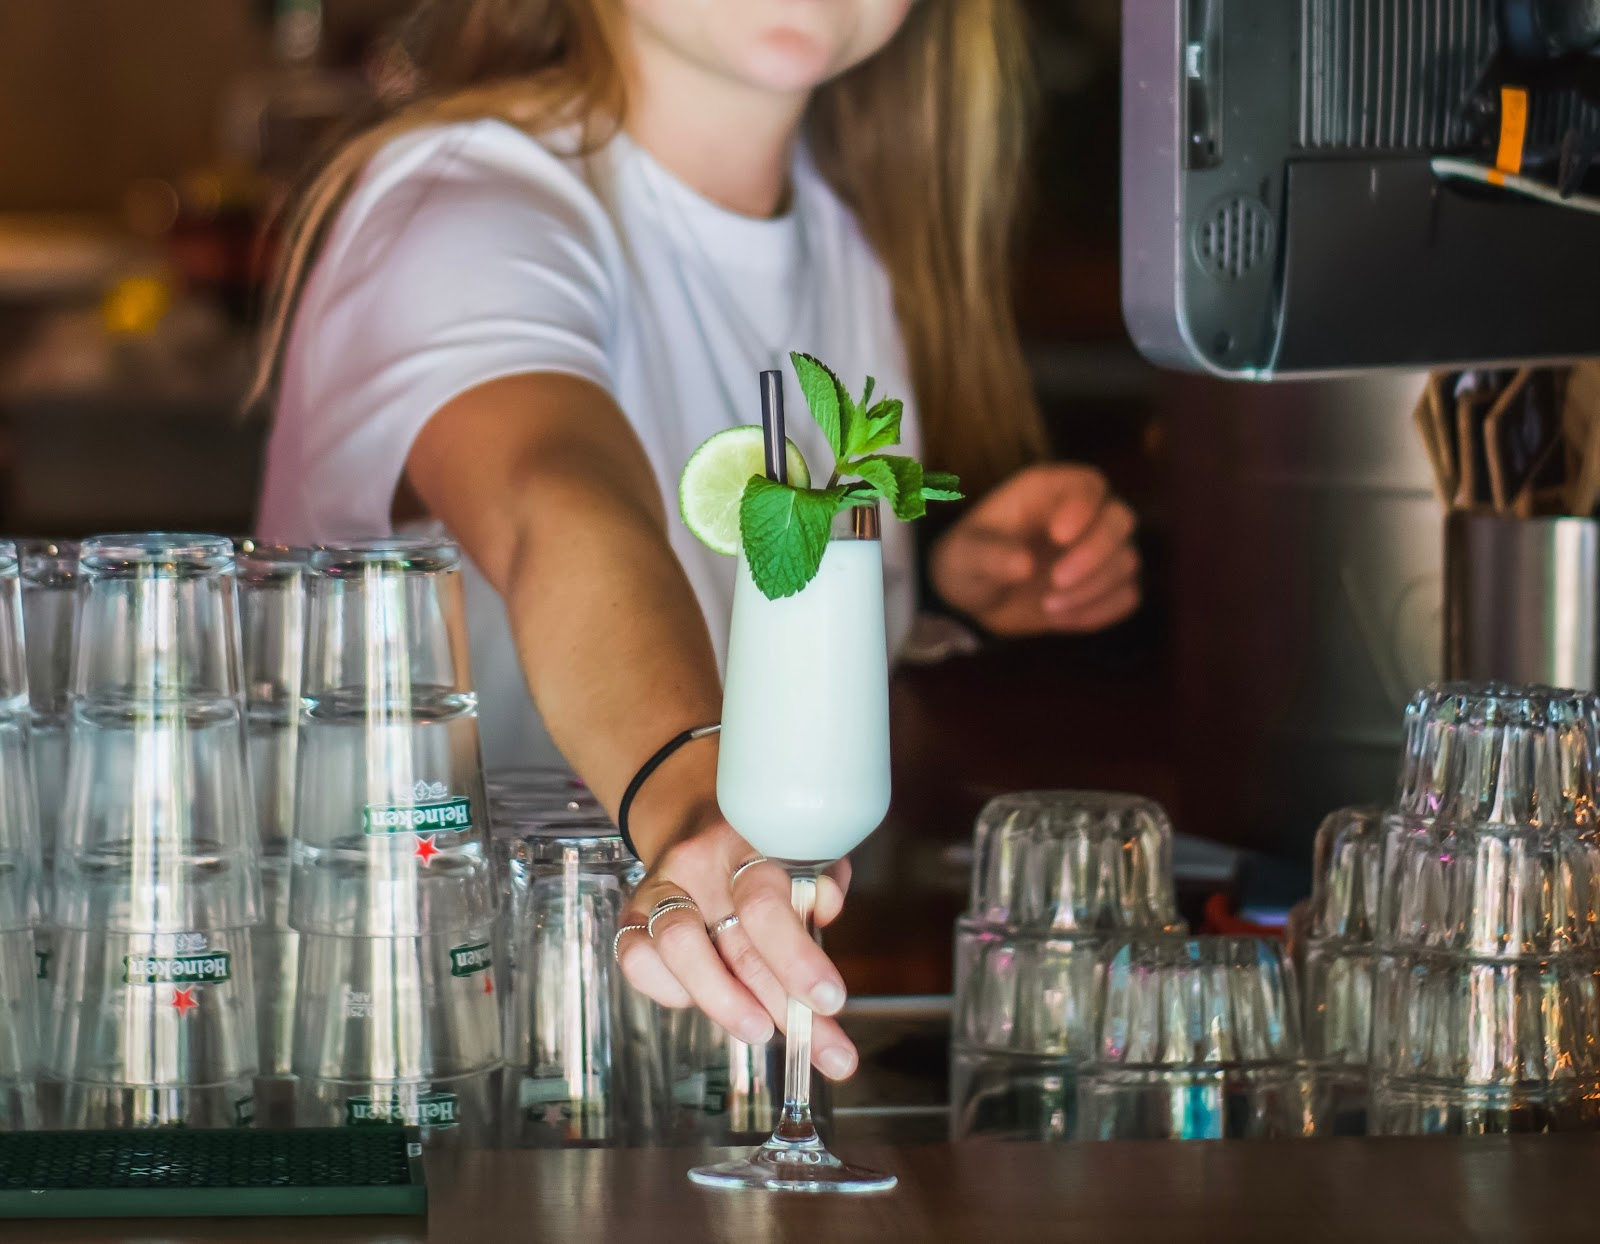 Bartending school can help you learn how to make a variety of cocktails